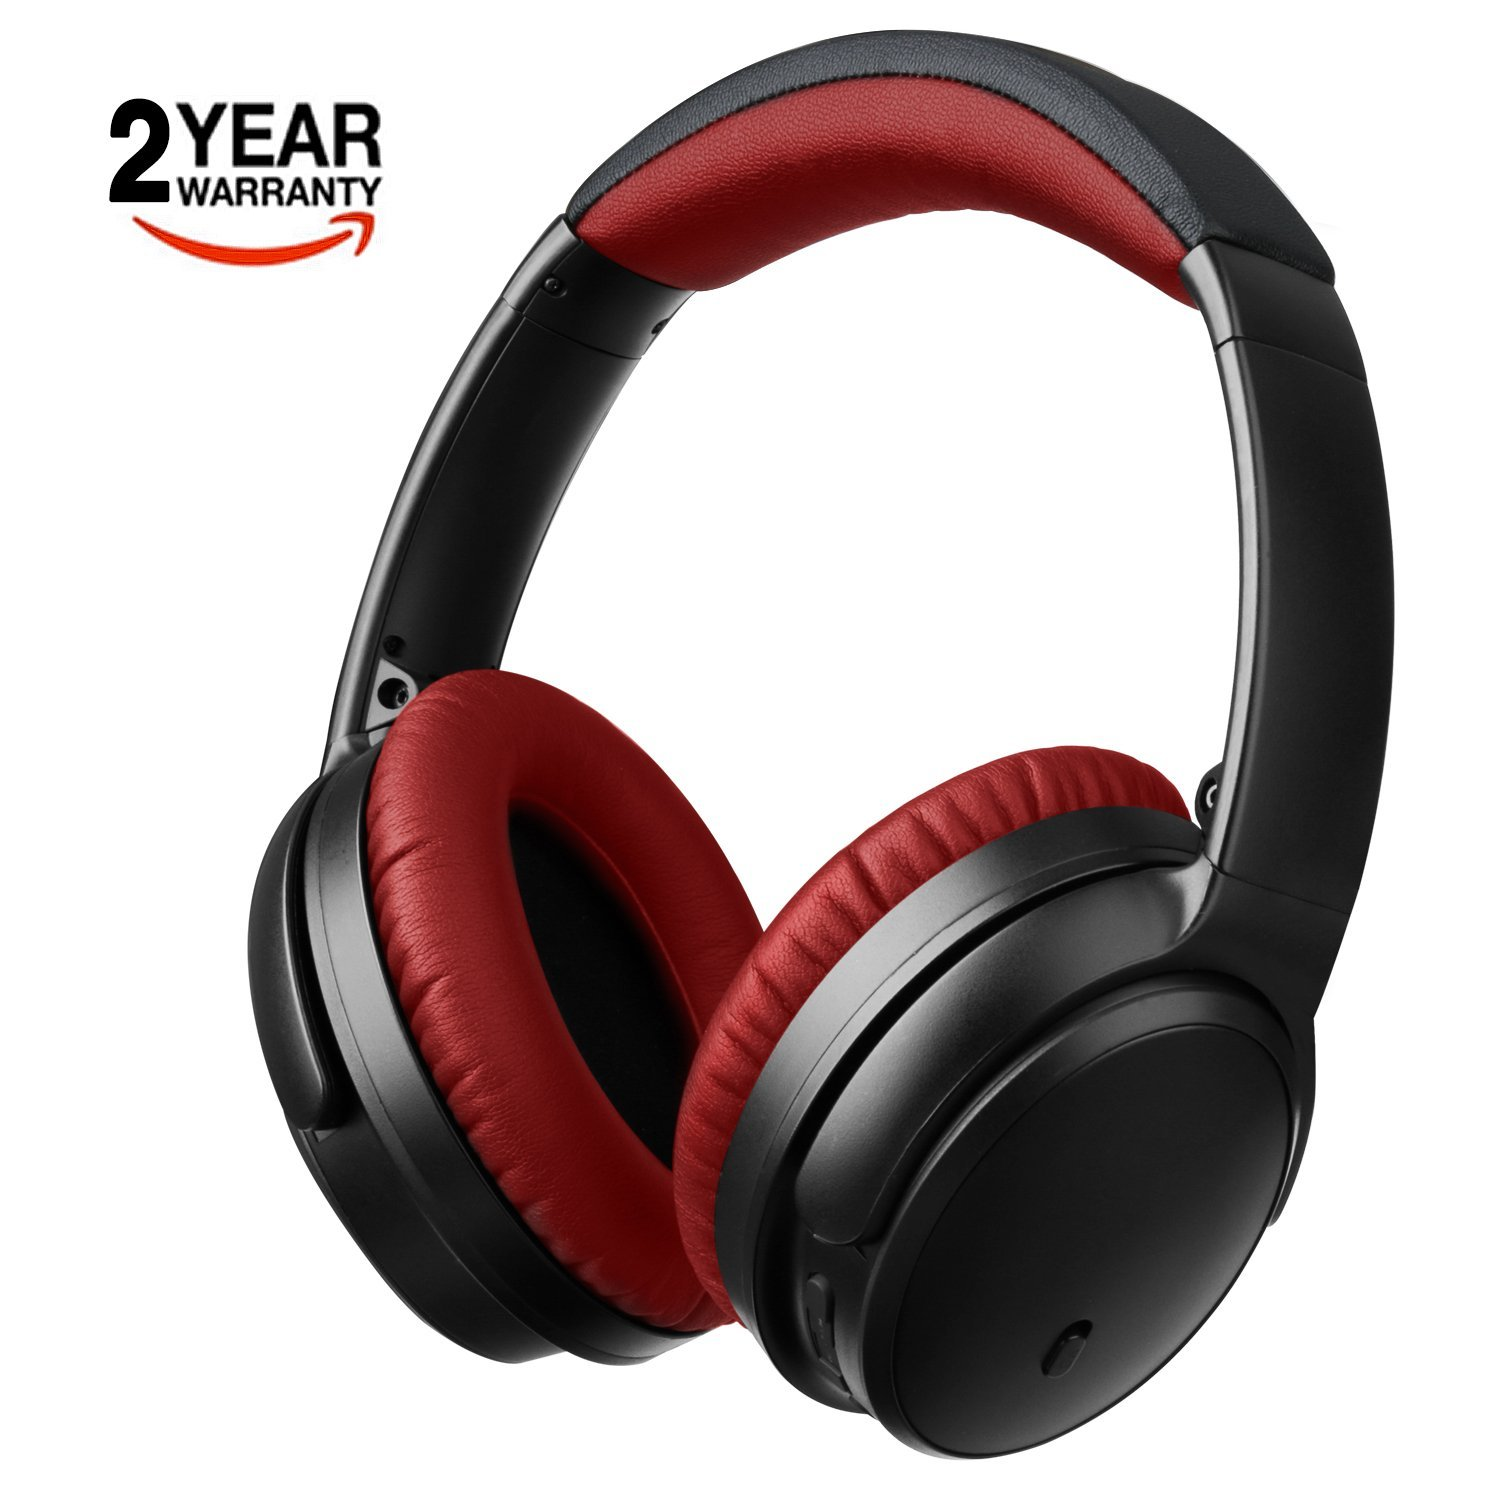 Active Noise Cancelling Bluetooth Headphones - Hifi Stereo Over Ear Wireless Headset with Microphone, Comfortable Protein Earpads, Foldable Design, 25H Playtime for PC/Cell Phones/TV, Travel and Work by Levin